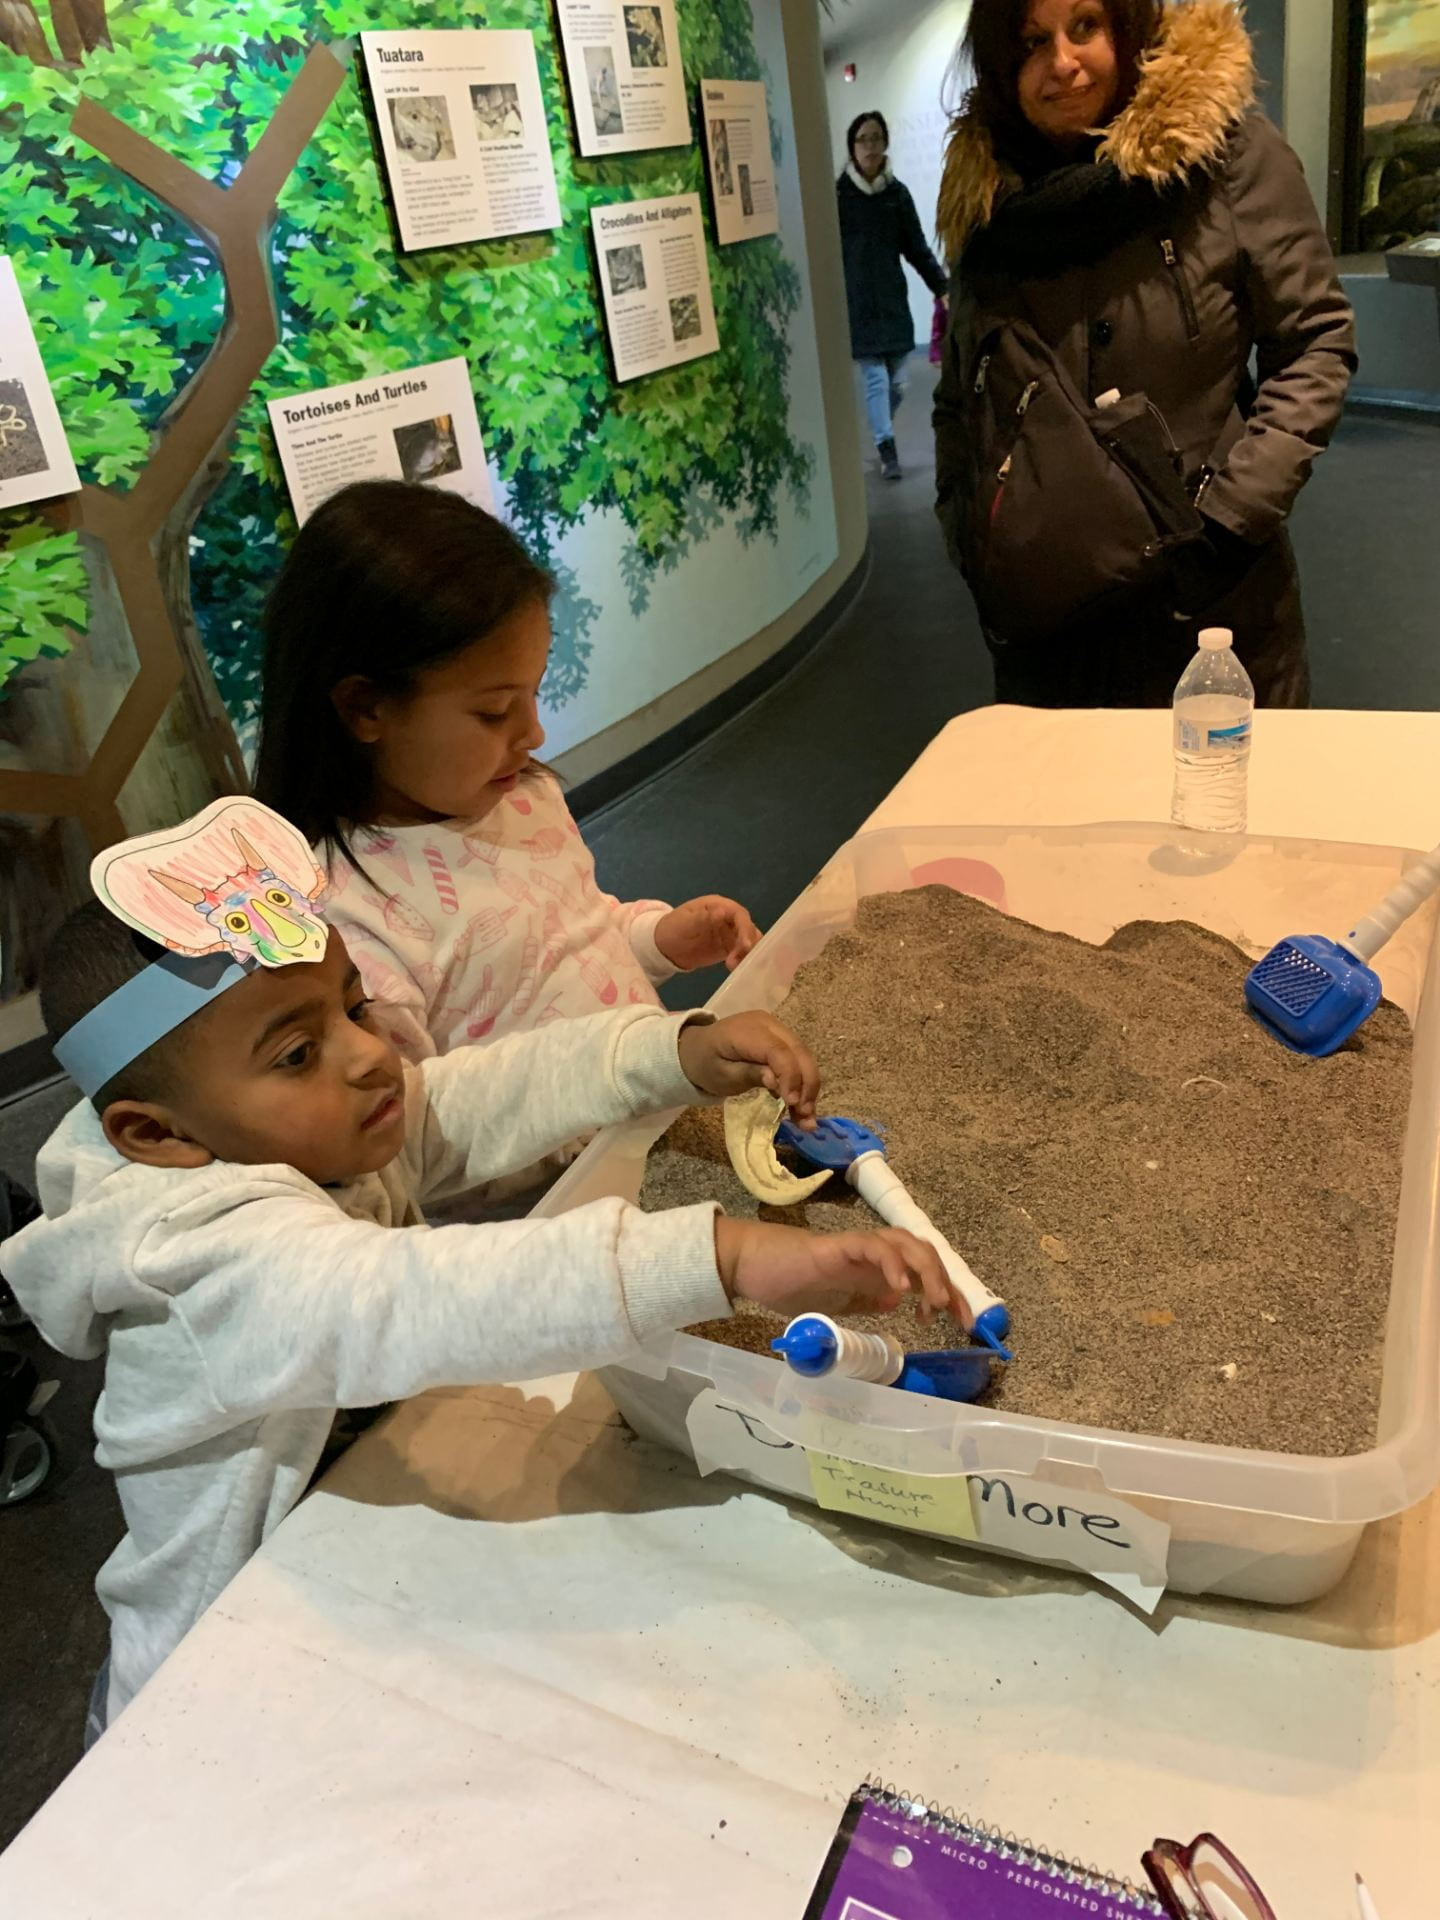 children exploring with sand at the children's museum